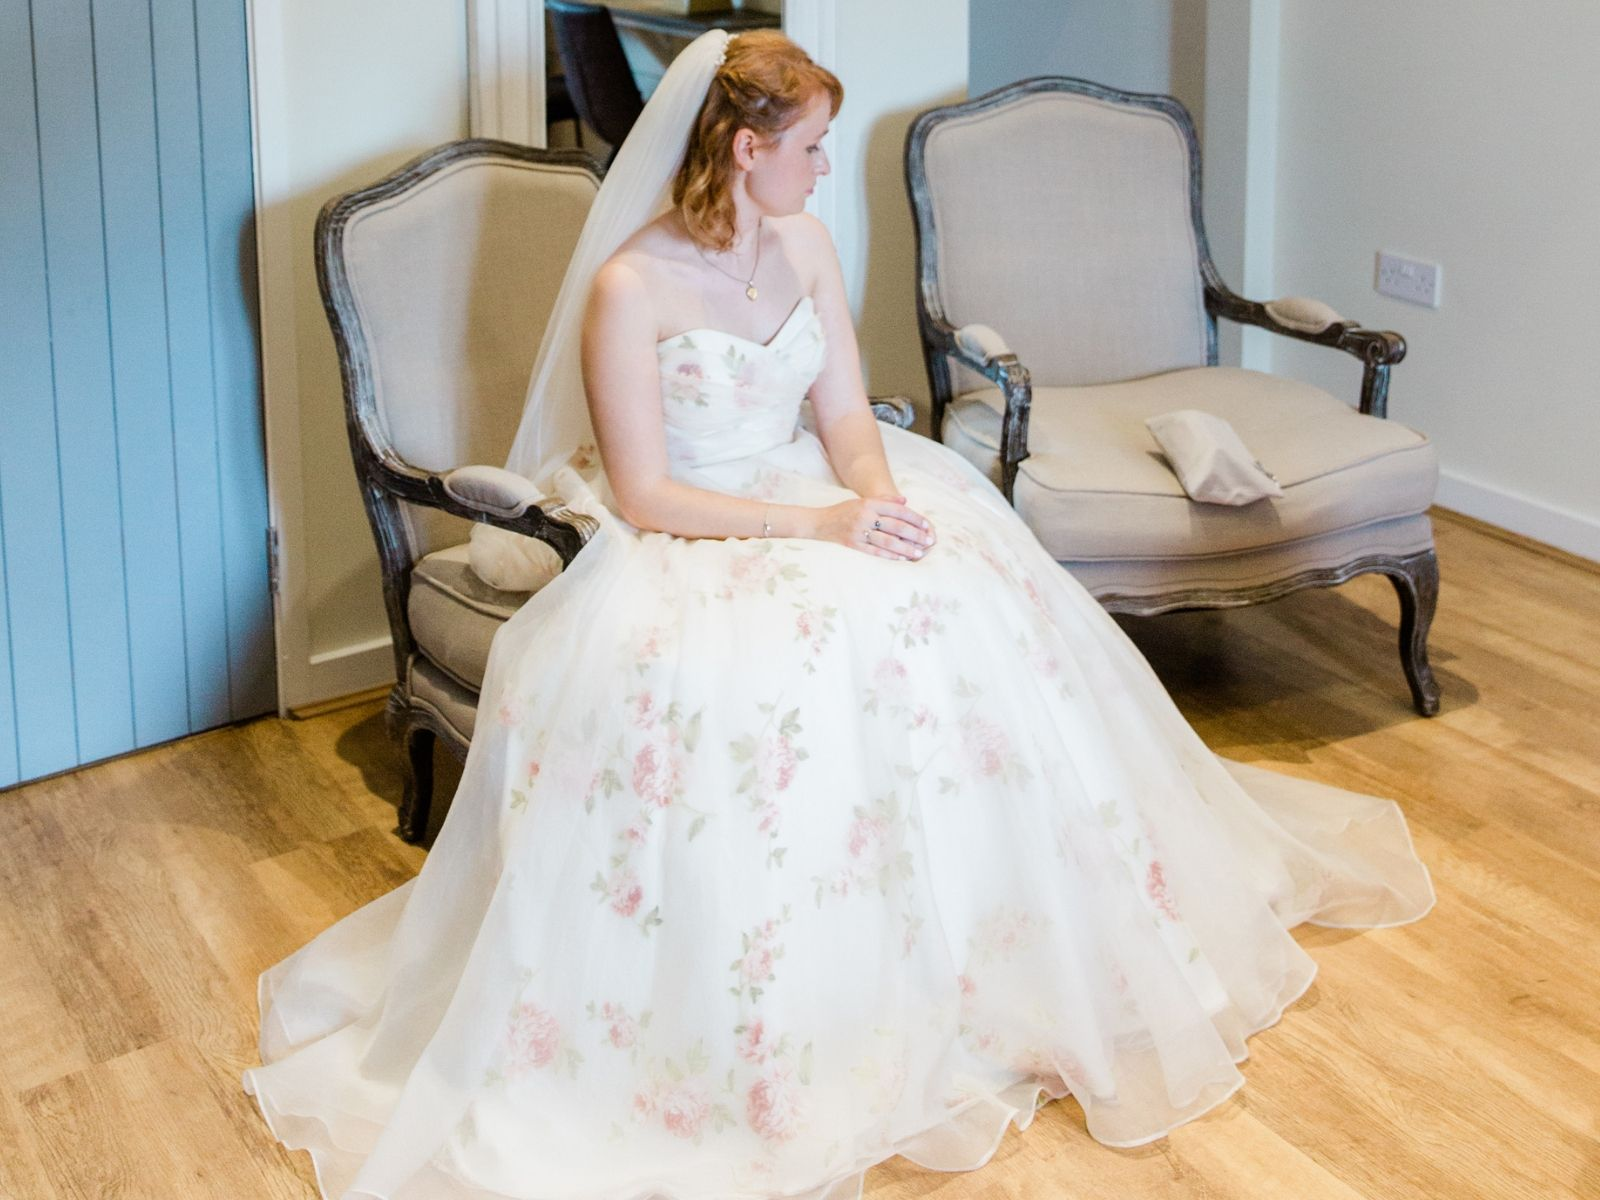 Rose-covered wedding dress by Loulou Bridal